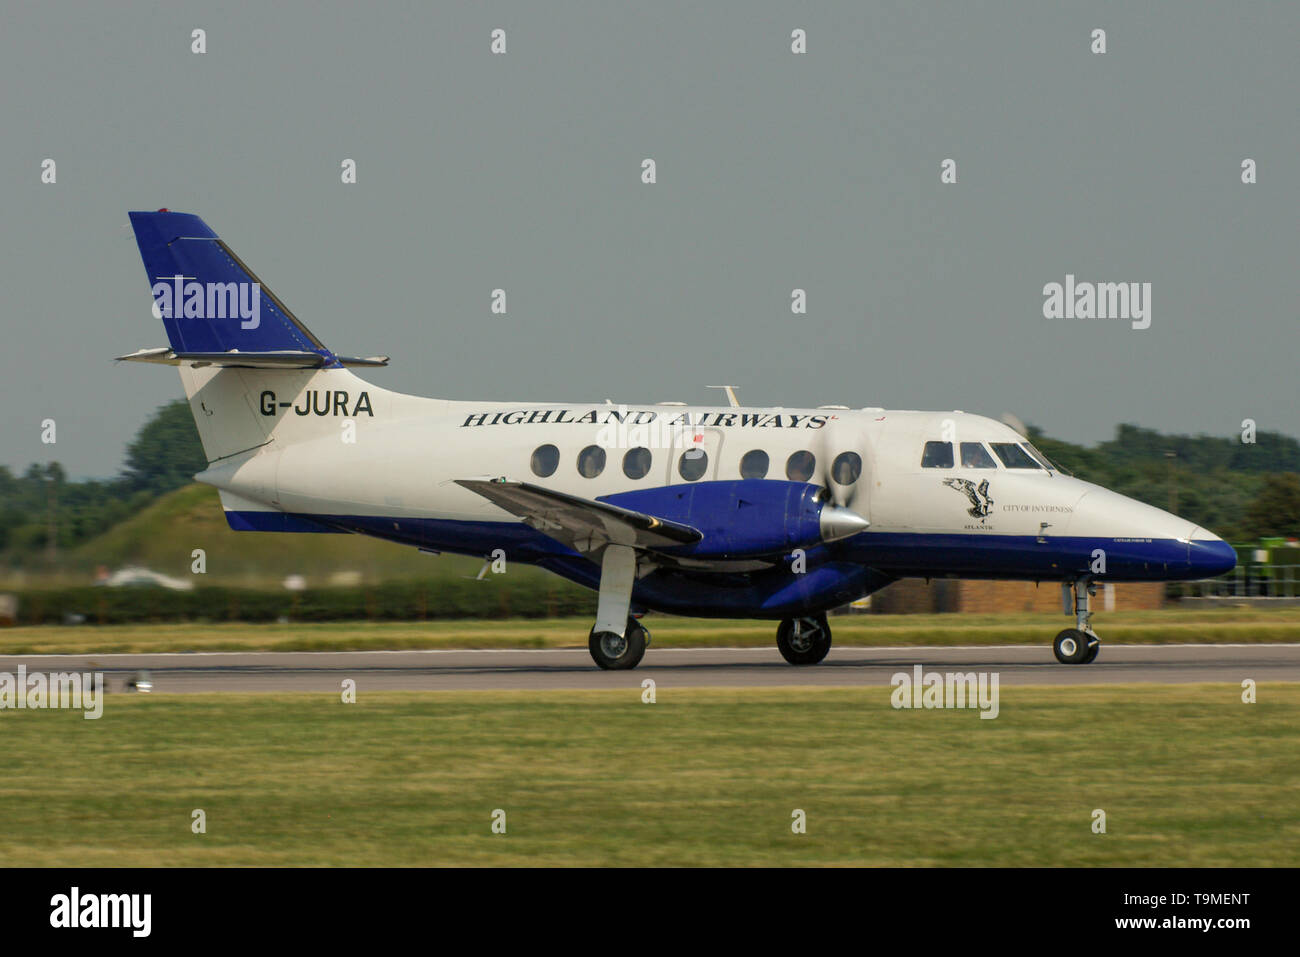 Highland Airways British Aerospace Jetstream 31 -3112 turboprop airliner plane G-JURA lining up for take off. Handley Page Jetstream. Space for copy - Stock Image